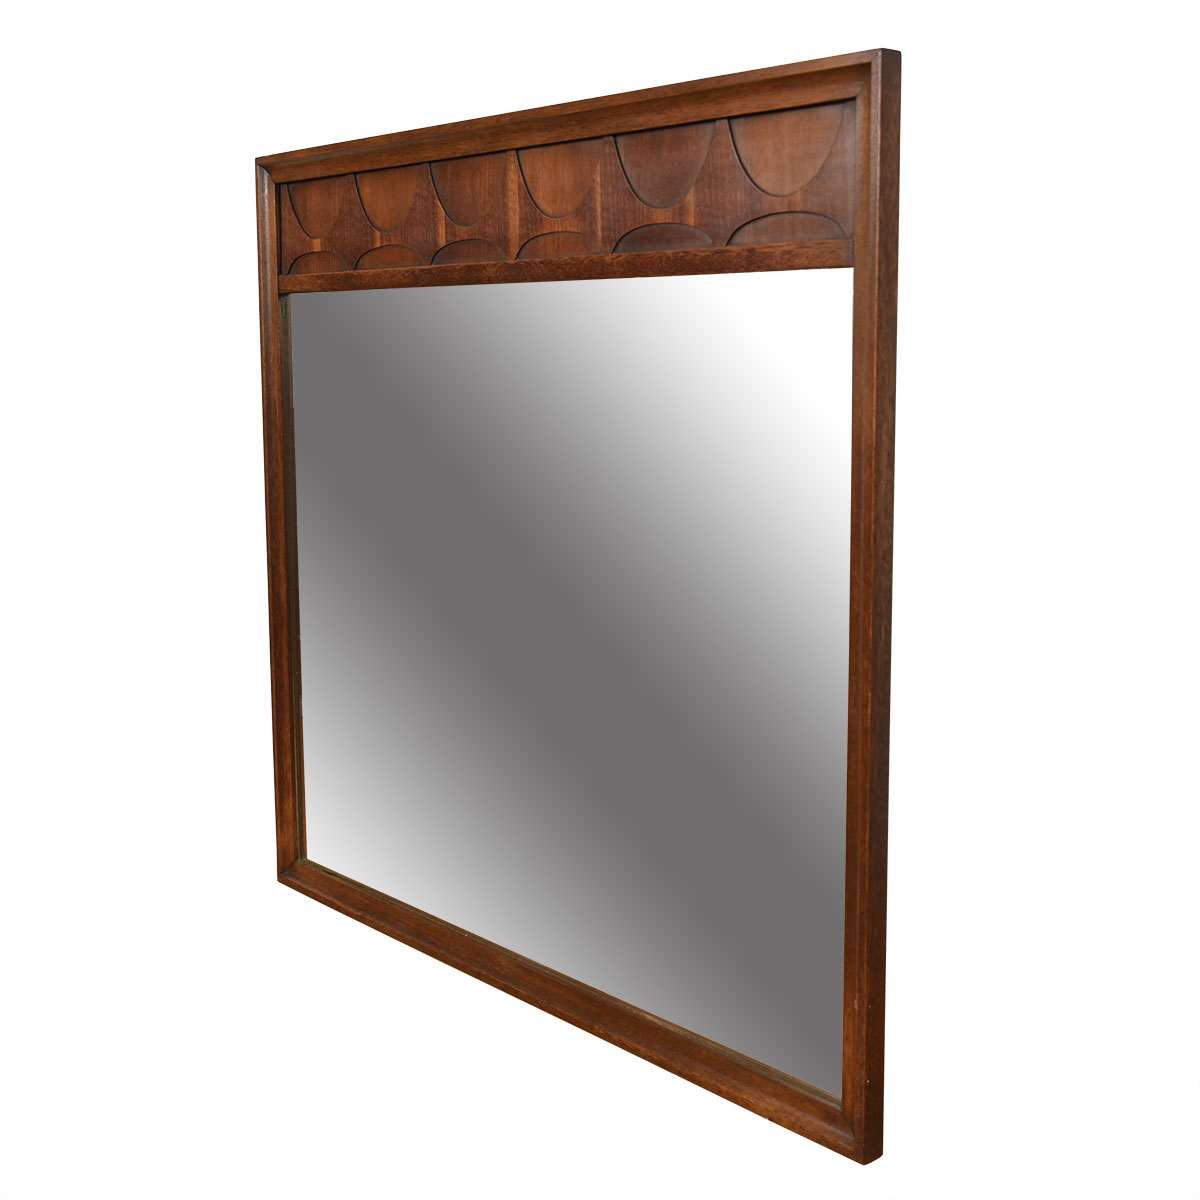 Large Broyhill Brasilia Mirror with Narrow Band of Swoops at the Top